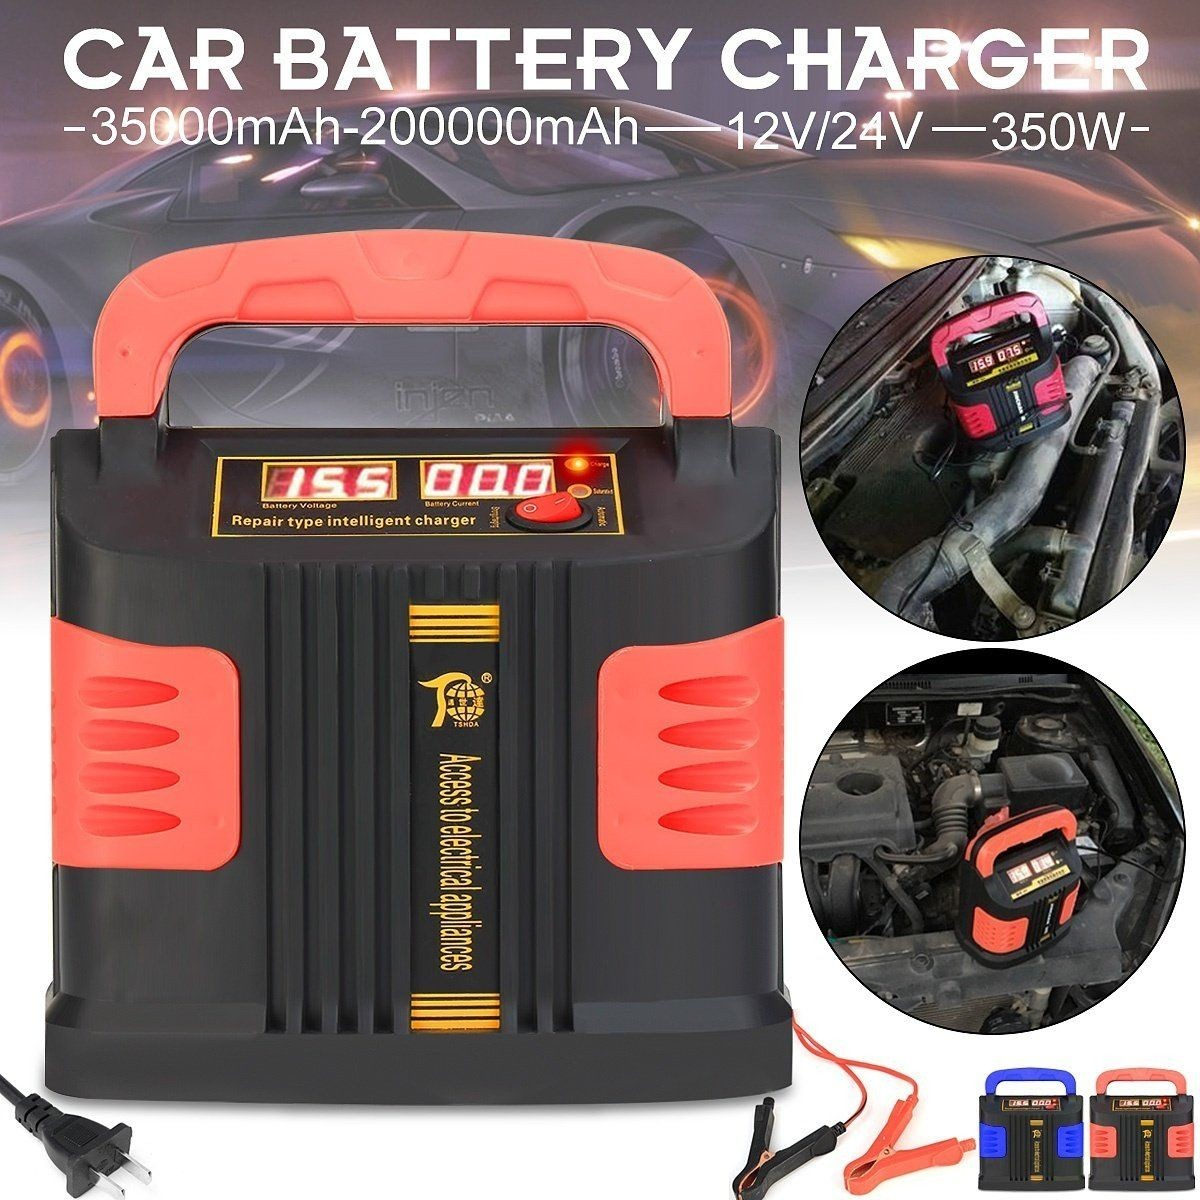 350W Automatic 12V 24V 200Ah Intelligent Pulse Repair Type Battery Electric 2 Modes Strong Automatic Charging Car Emergency Charger Booster Circuit